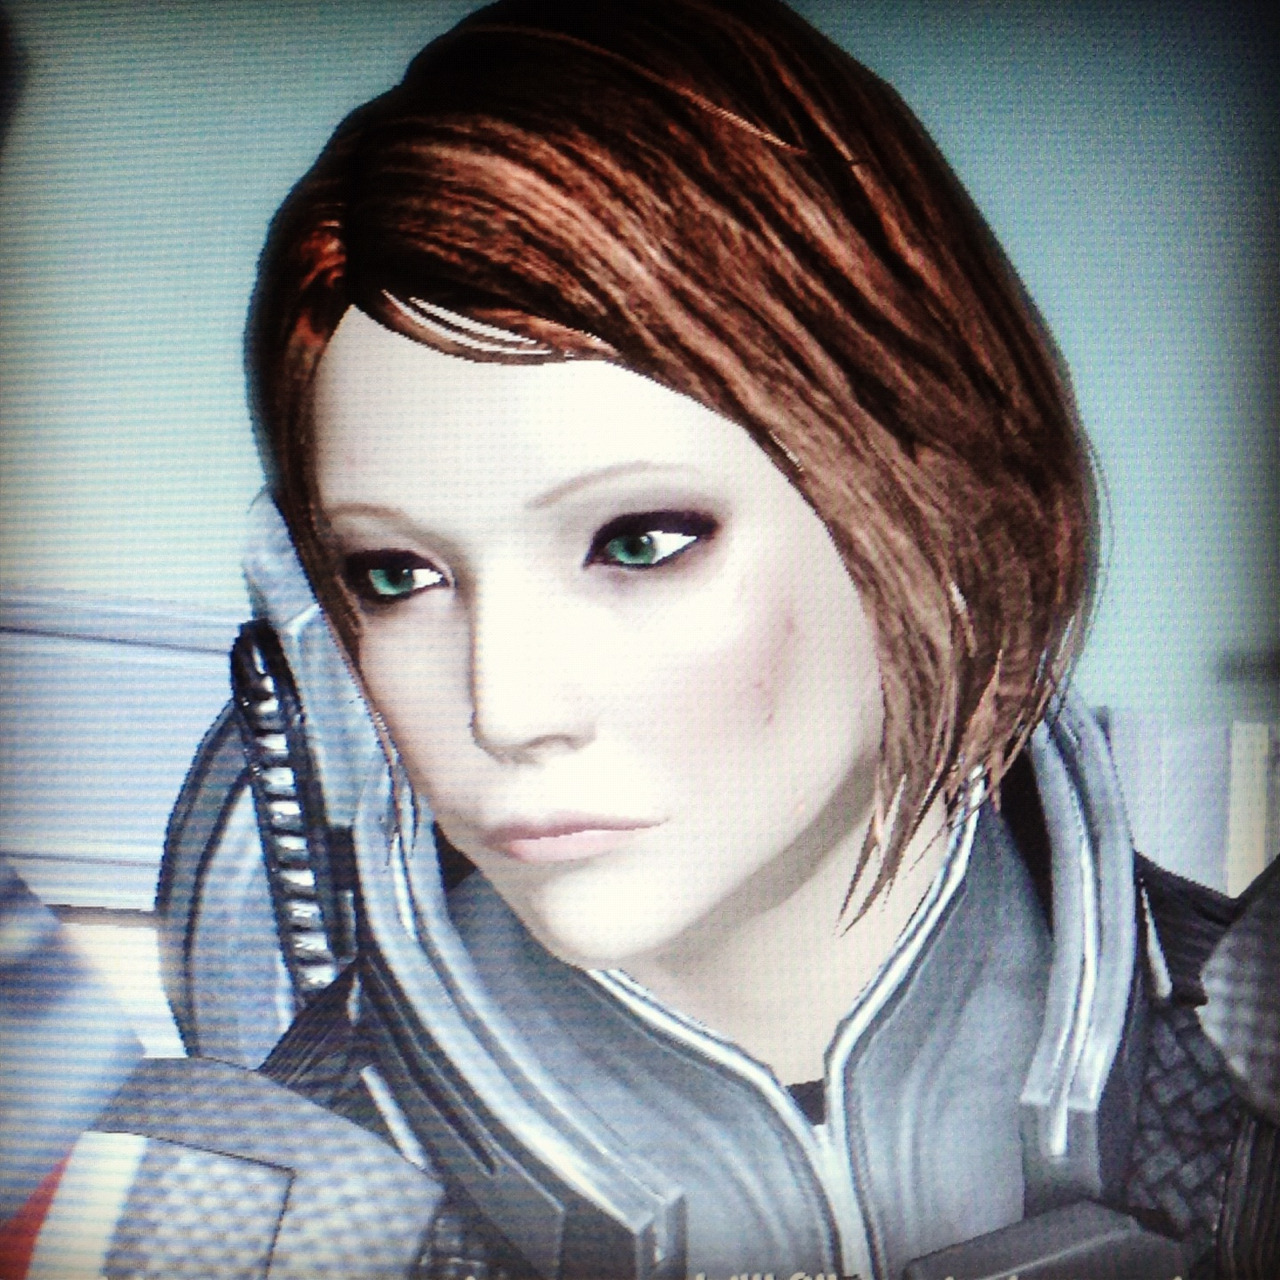 My current Shepard.